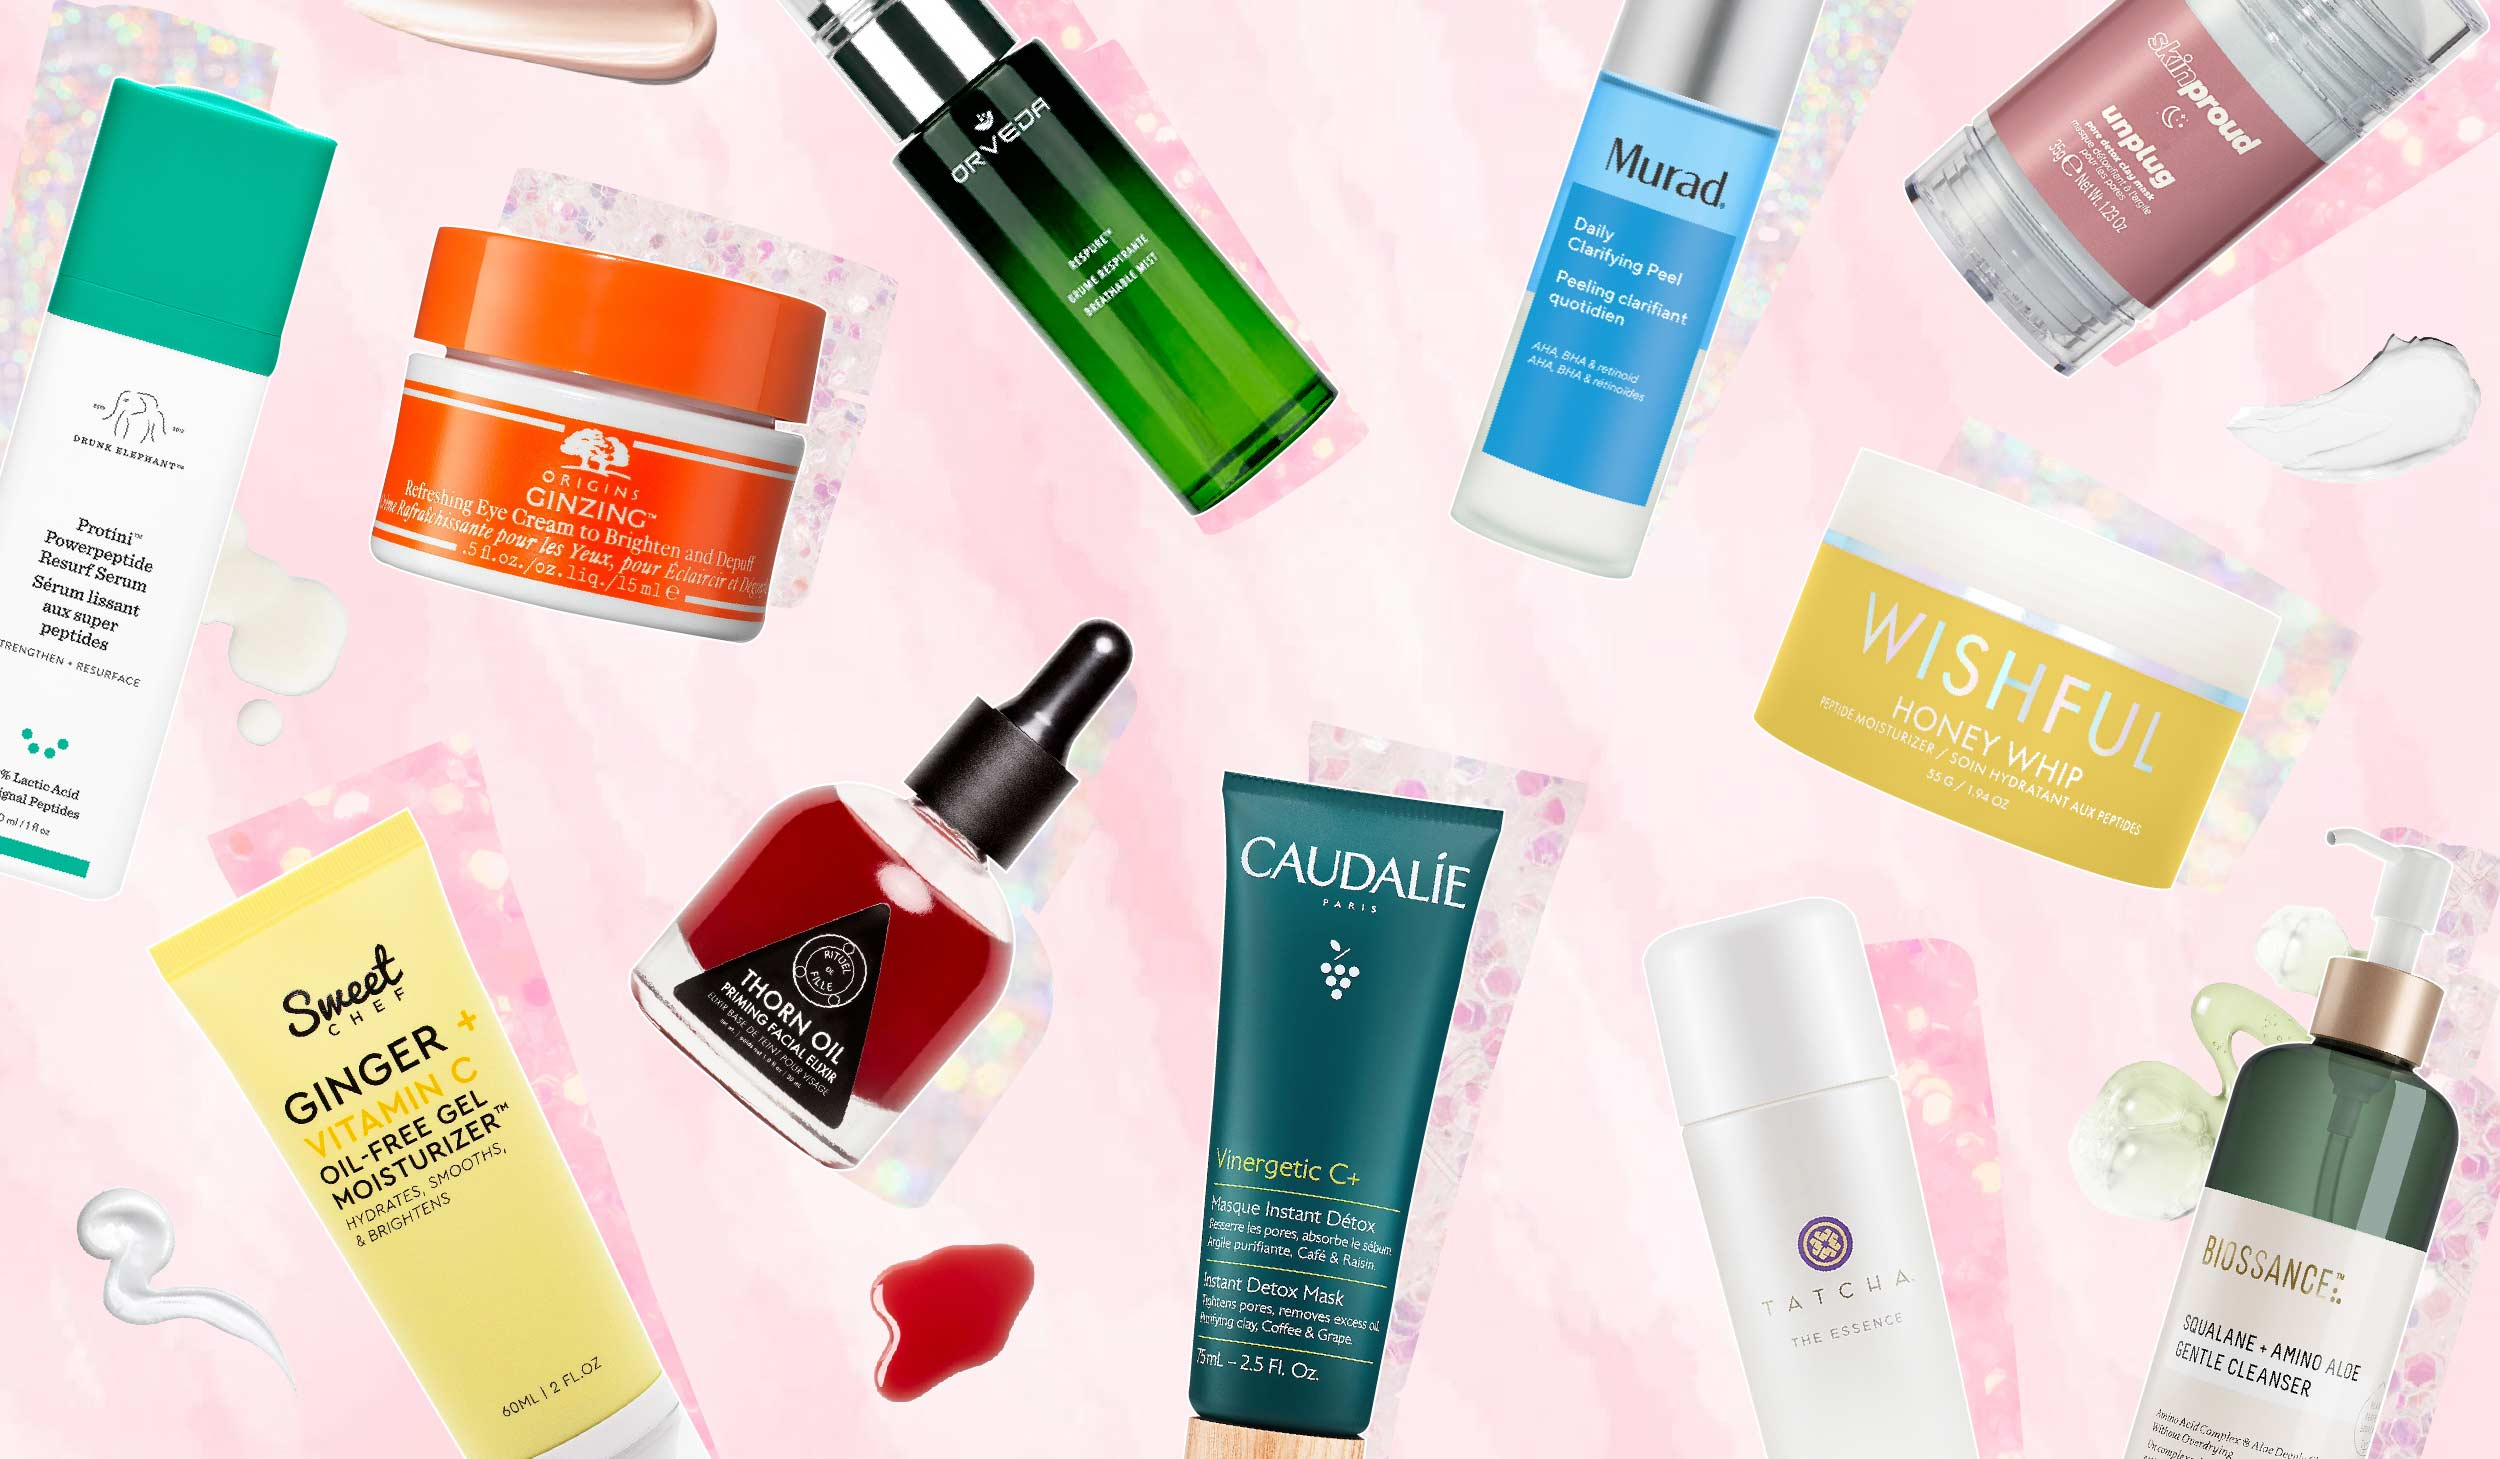 13 New Serums, Masks, & Moisturizers That Promise Your Best Skin Ever